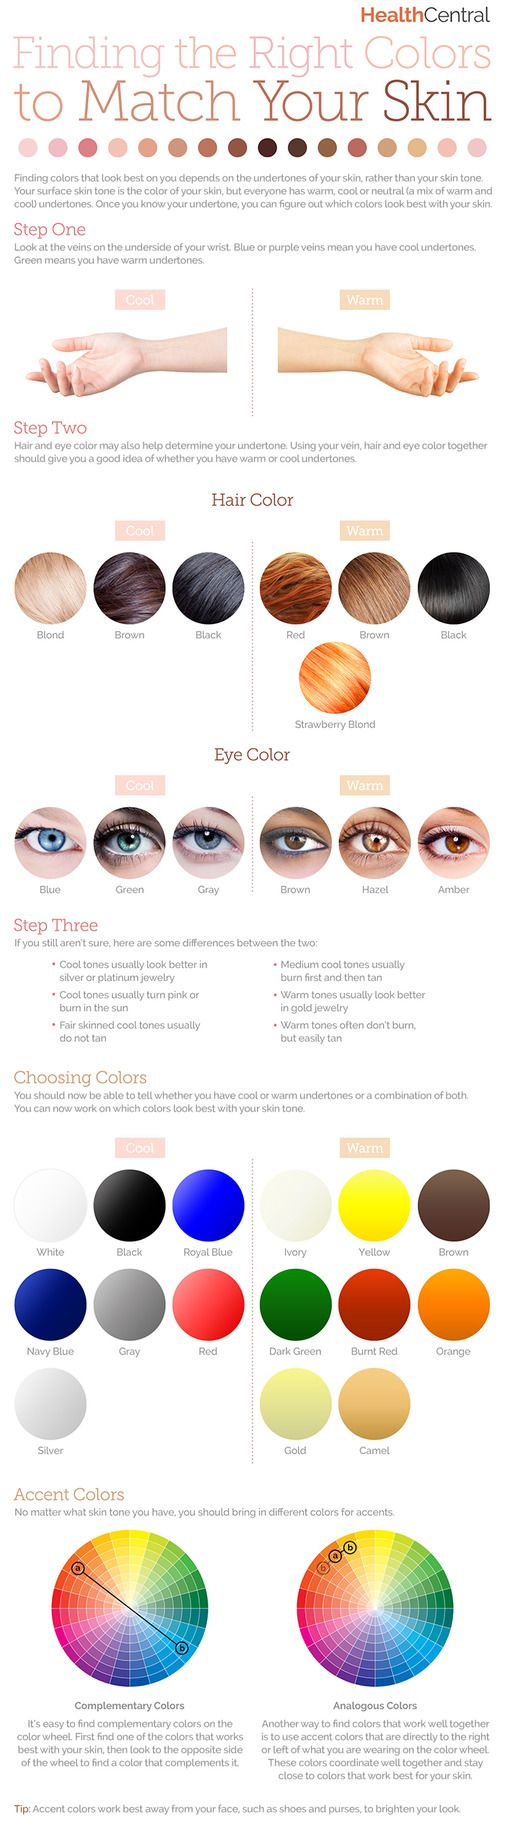 How to find the right colors to match your #skin: (#INFOGRAPHIC) - See more information about your skin and health here: What ever your skin tone choose the right colours for you and look great.